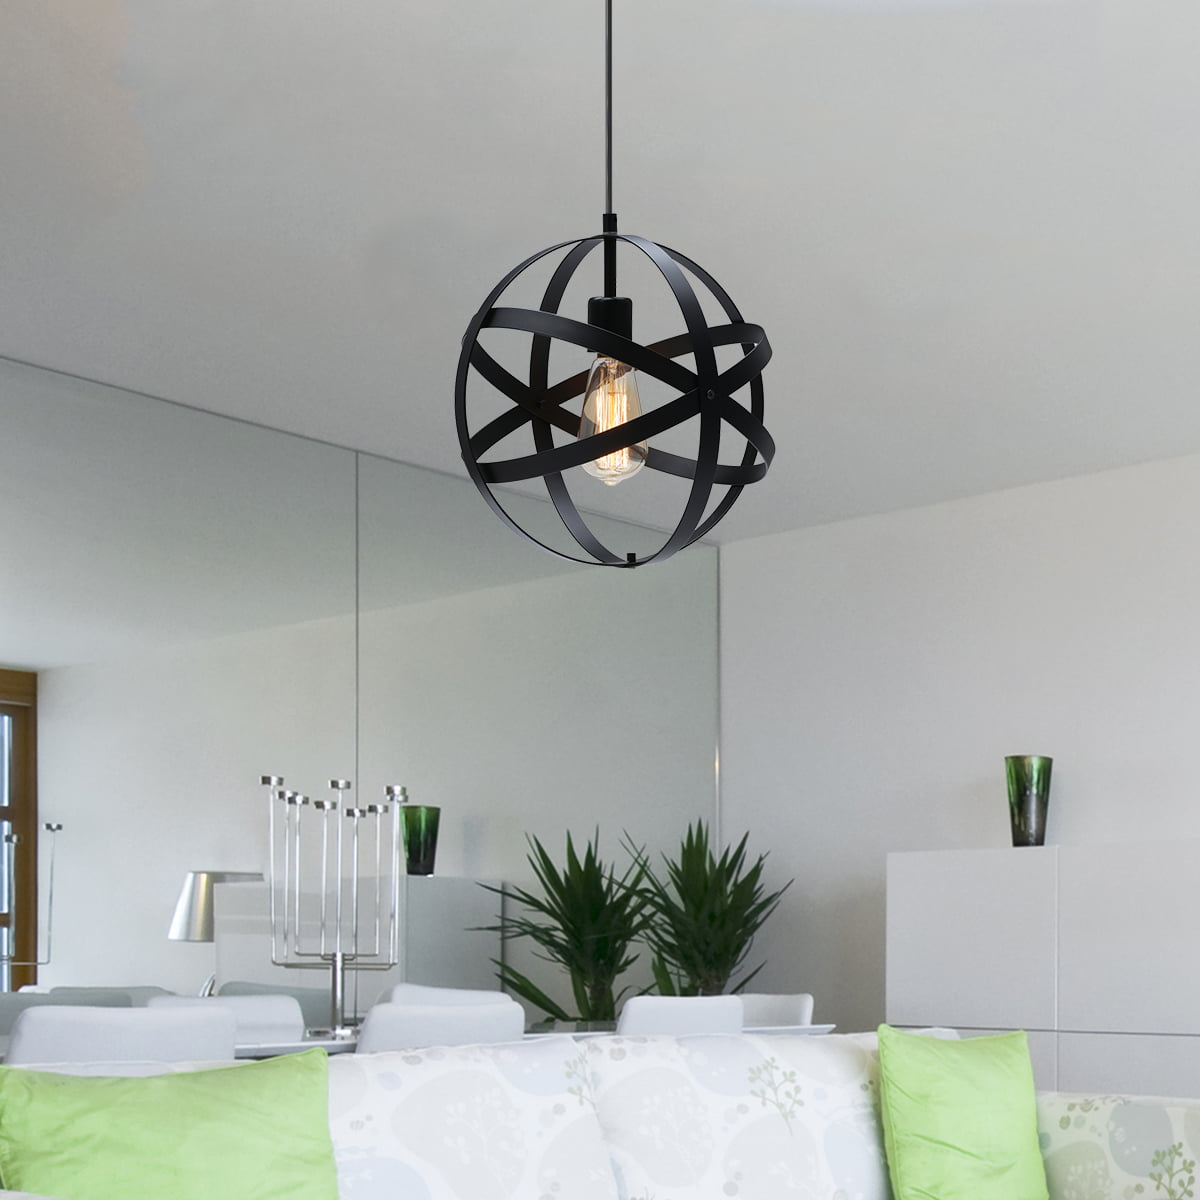 Picture of: Industrial Metal Pendant Light Spherical Pendant Light Rustic Chandelier Vintage Hanging Cage Globe Ceiling Light Fixture For Kitchen Island Dining Room Farmhouse Entryway Foyer Walmart Com Walmart Com